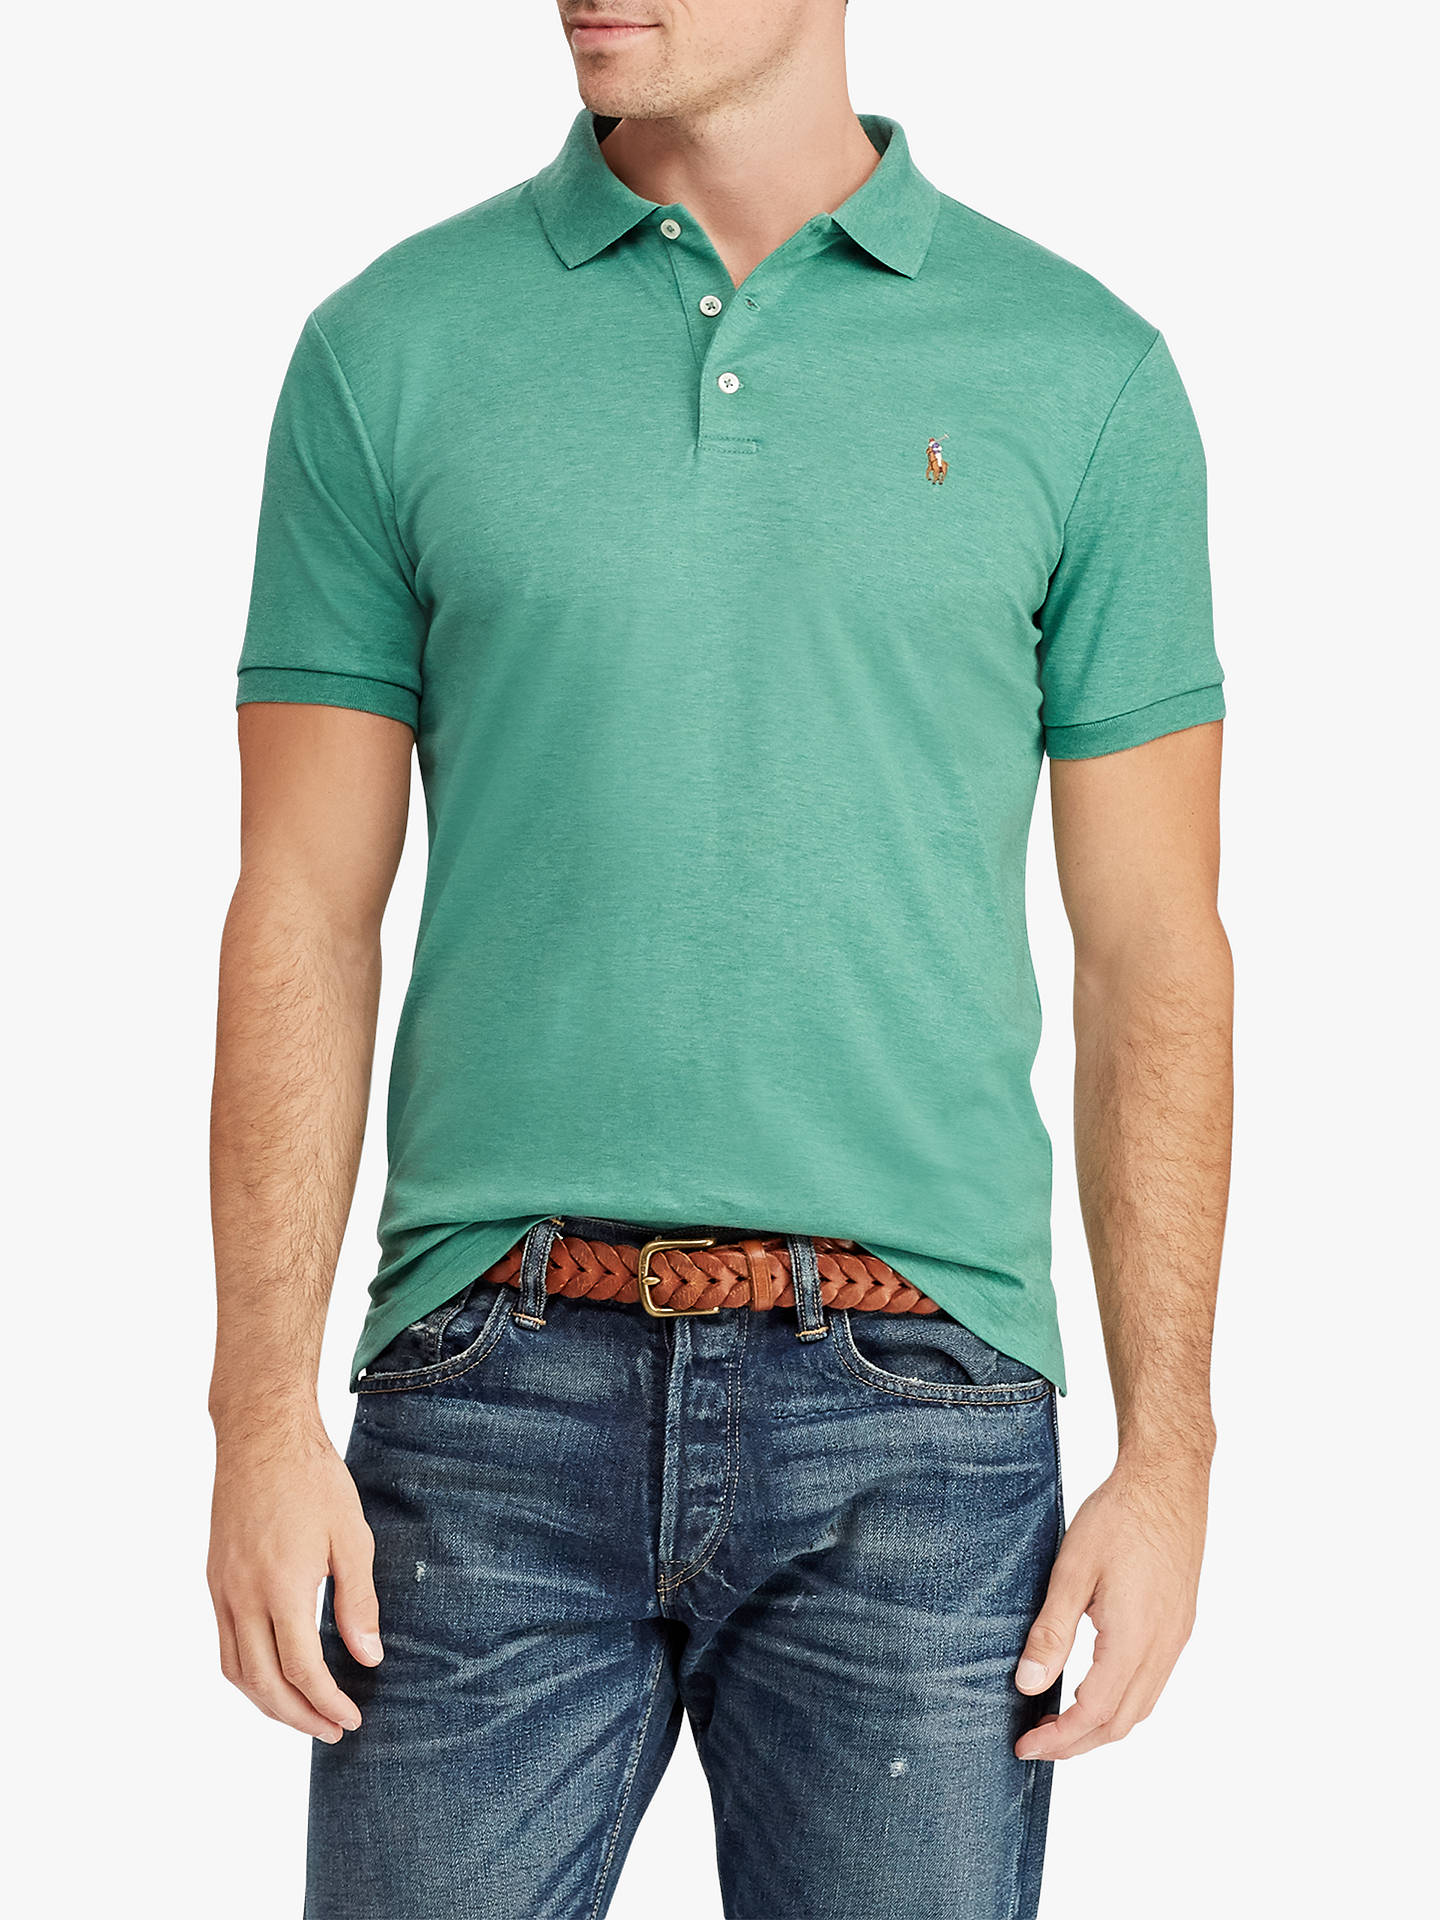 dcbeac87b917e Polo Ralph Lauren Custom Slim Soft Touch Polo Shirt at John Lewis ...